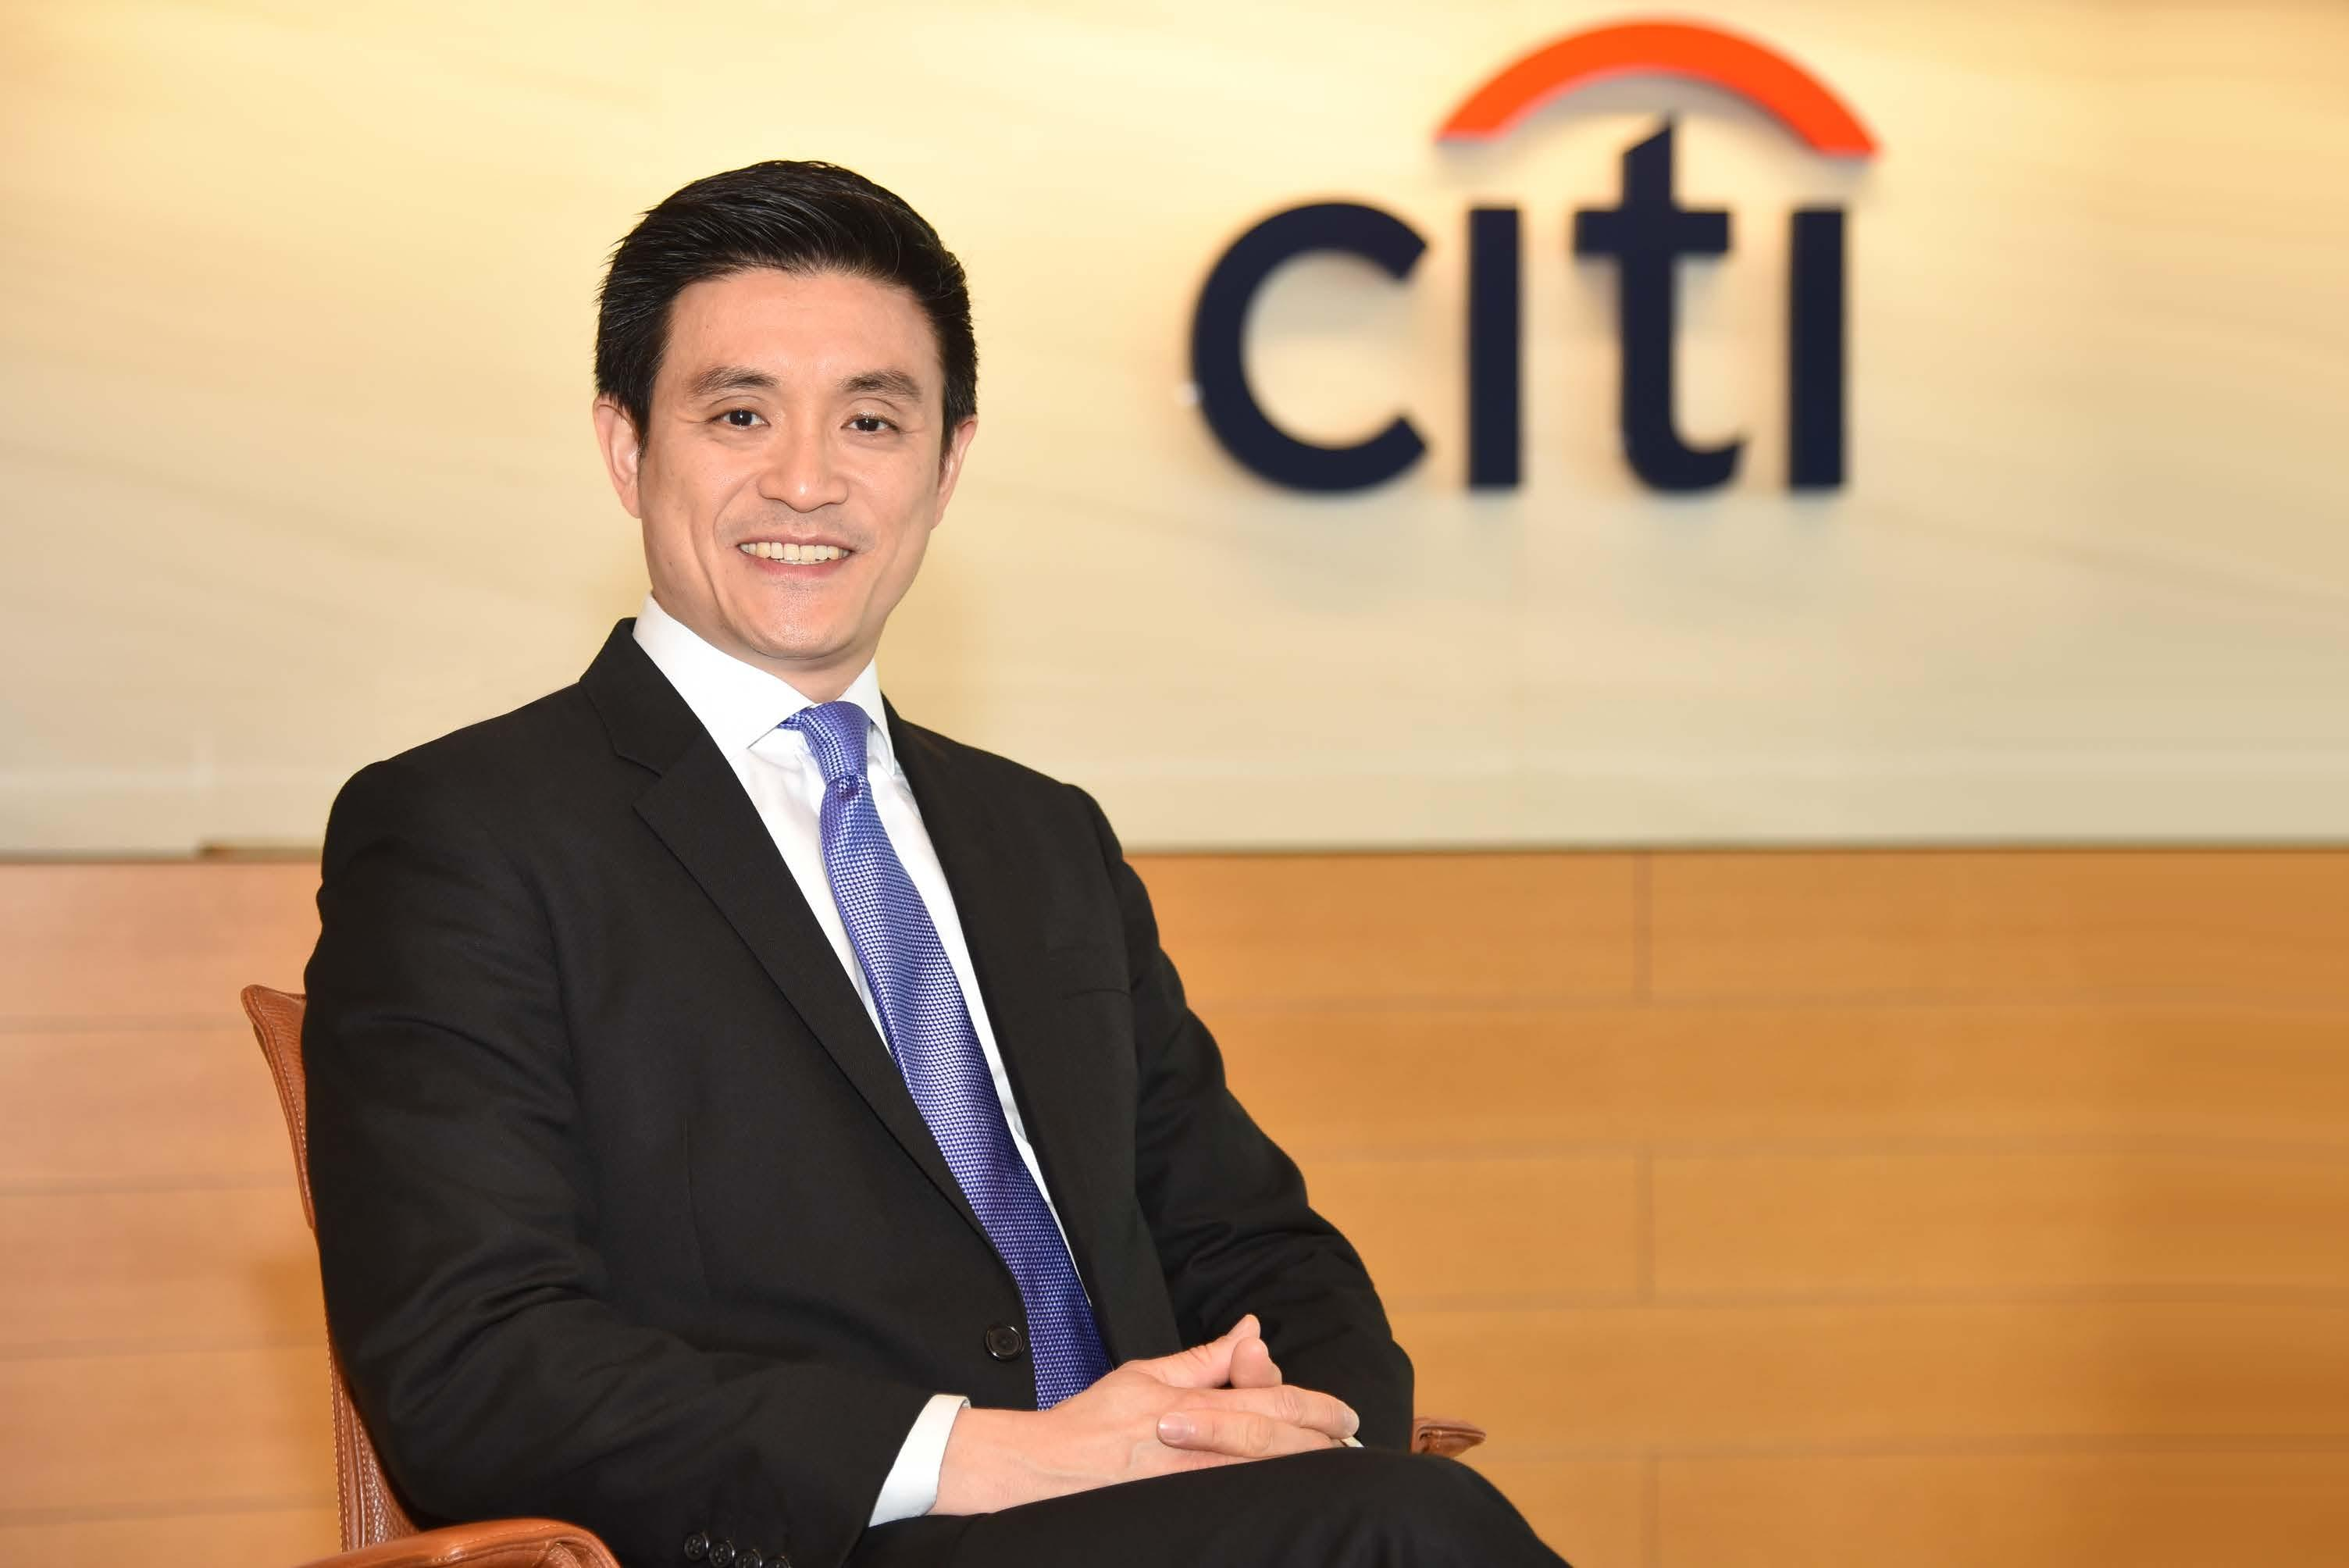 Citibank Singapore CEO Han resigns after 27 years; to join DBS